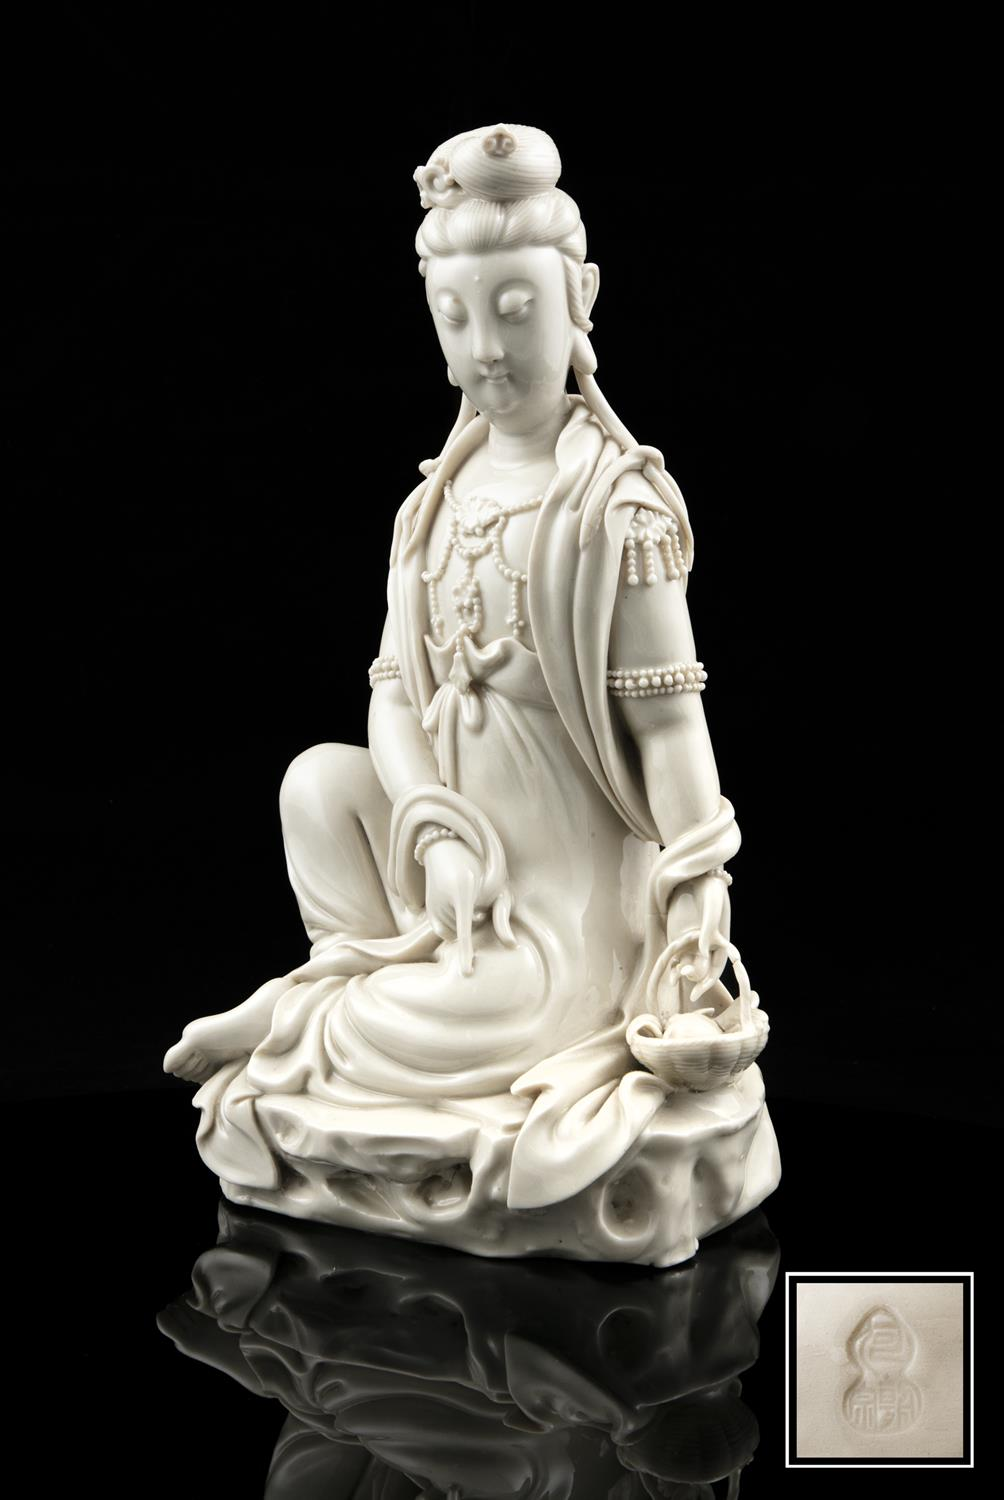 A LARGE DEHUA FIGURE OF A SEATED GUANYIN IMPRESSED WITH A HE CHAOZONG 何朝宗 CALABASH SHAPED SEAL - Image 33 of 48